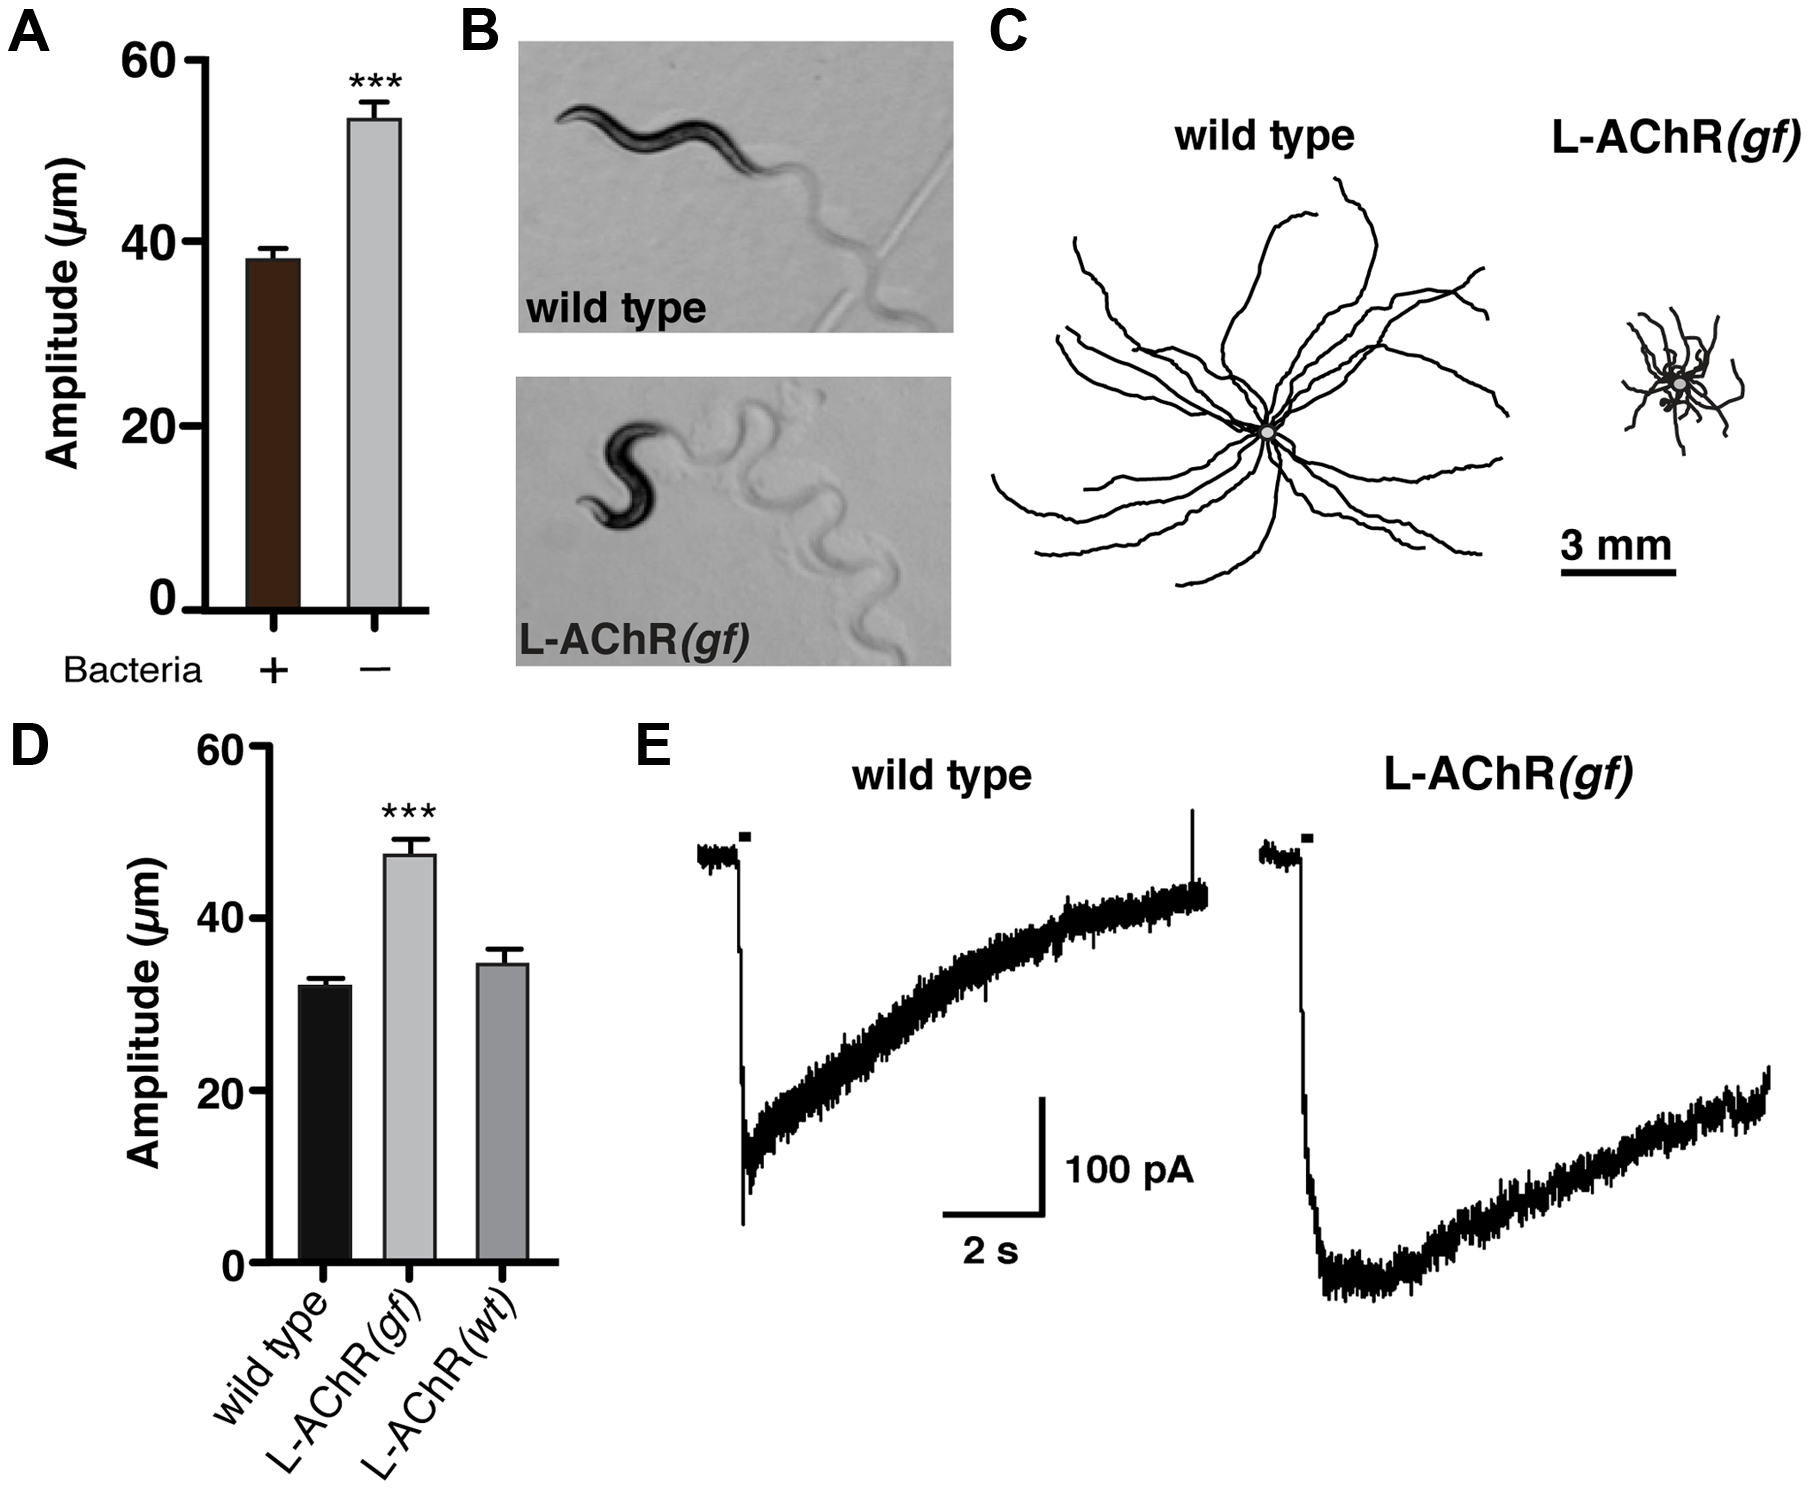 Enhanced L-AChR function increases neuromuscular signaling and alters the <i>C. elegans</i> locomotory pattern.